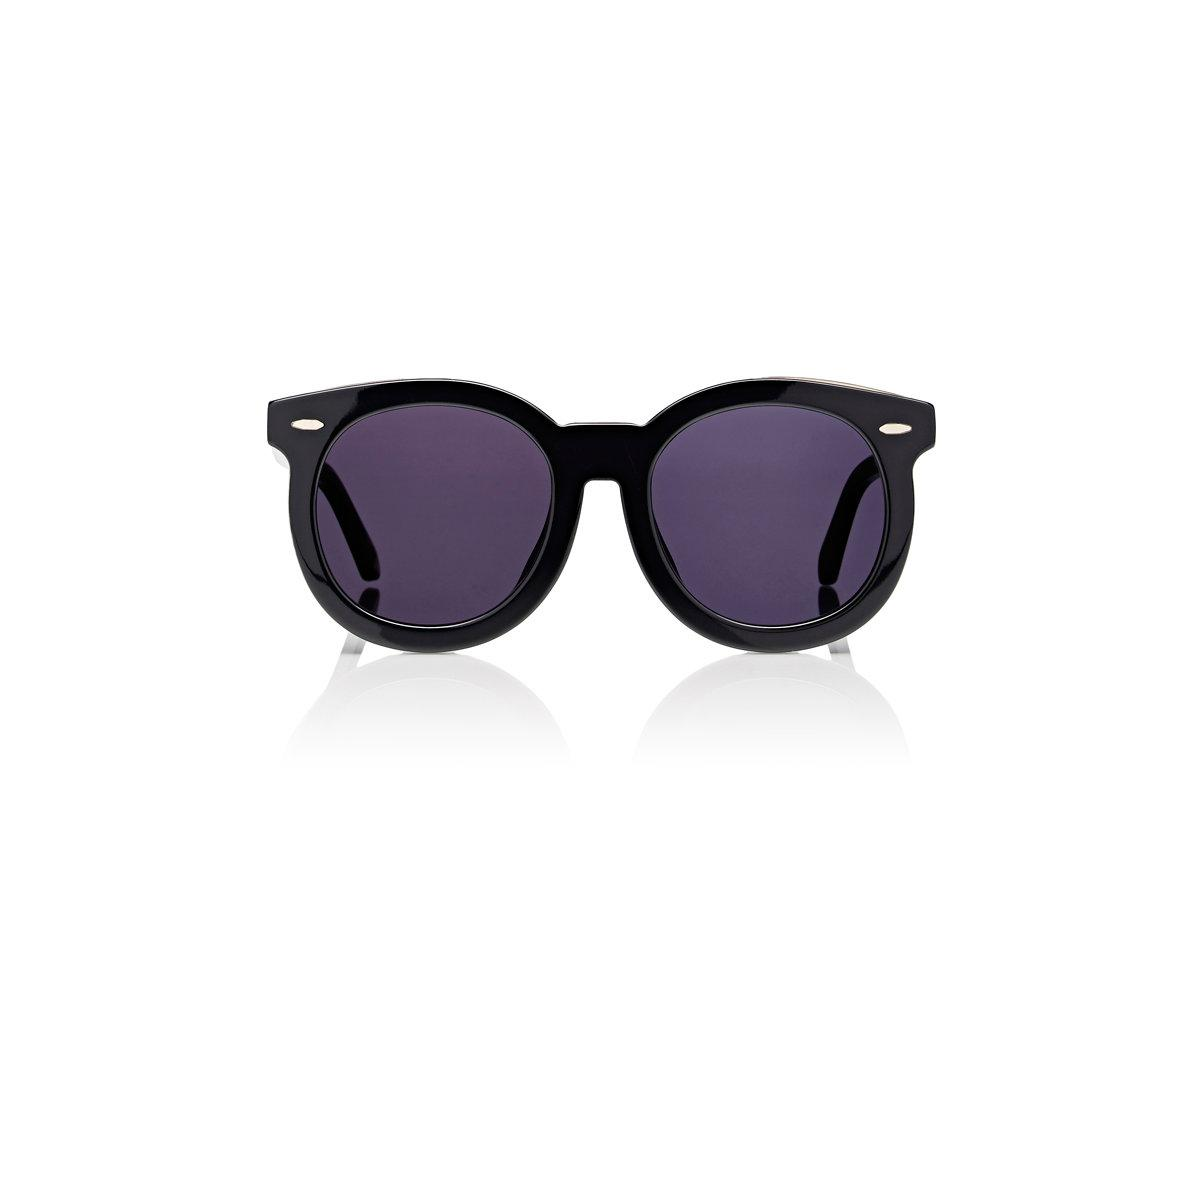 5702c01ff78 Karen Walker Alternate Fit Super Duper Thistle Sunglasses in Black ...